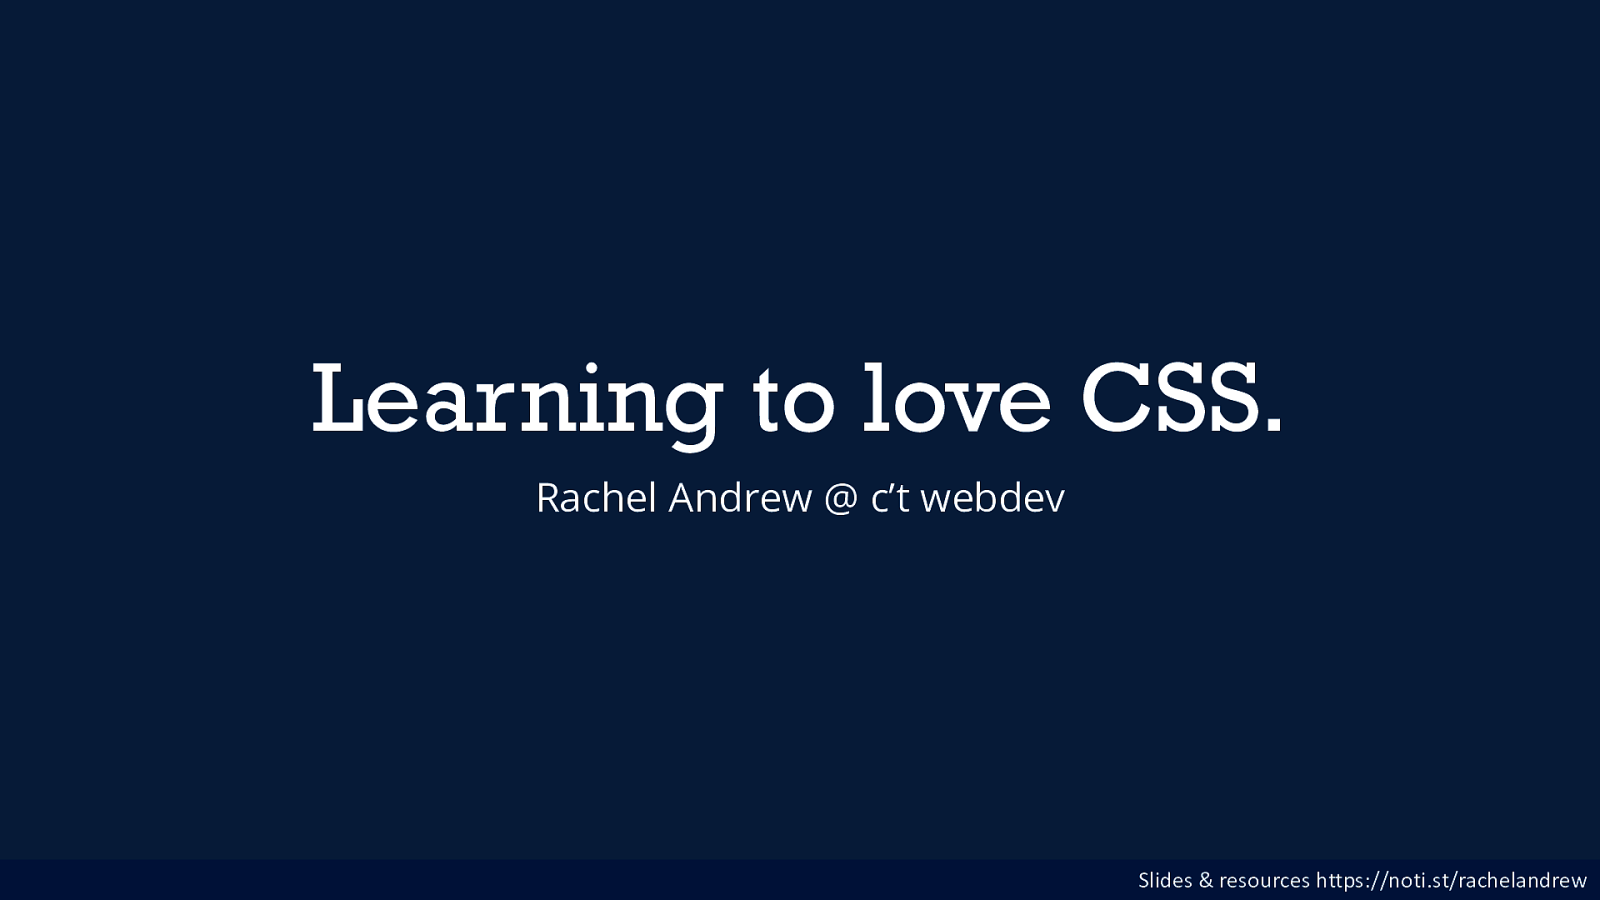 Learning to love CSS